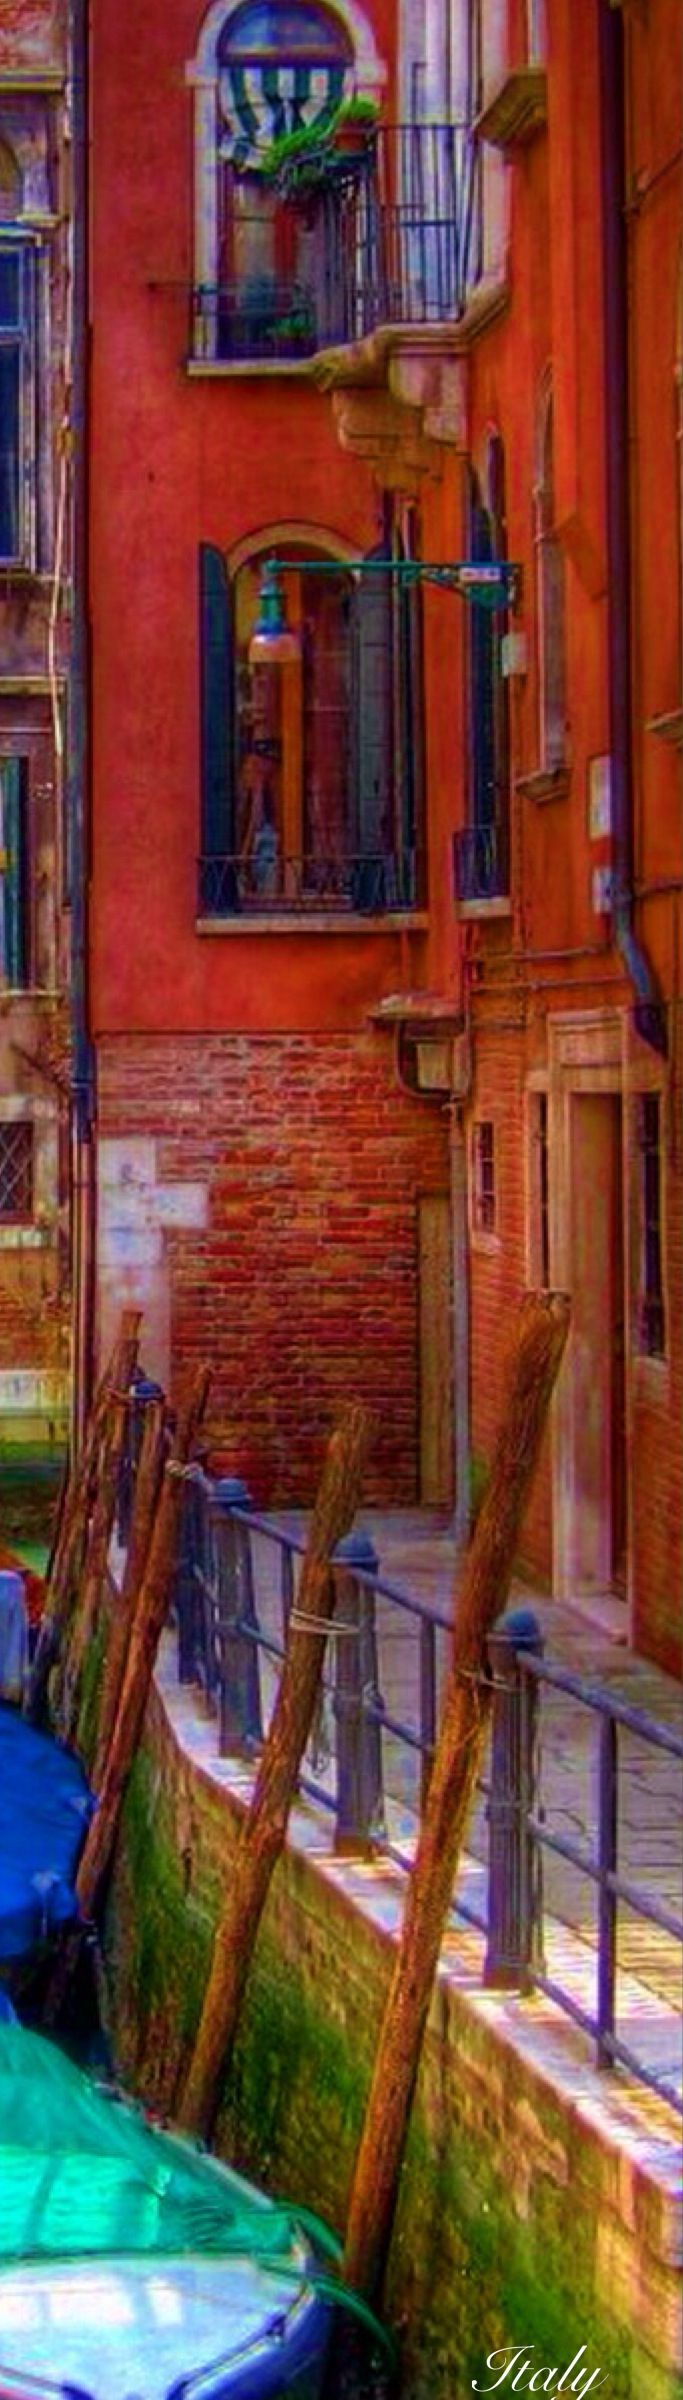 Italy kitchen theme venice itself a museum pinterest italy